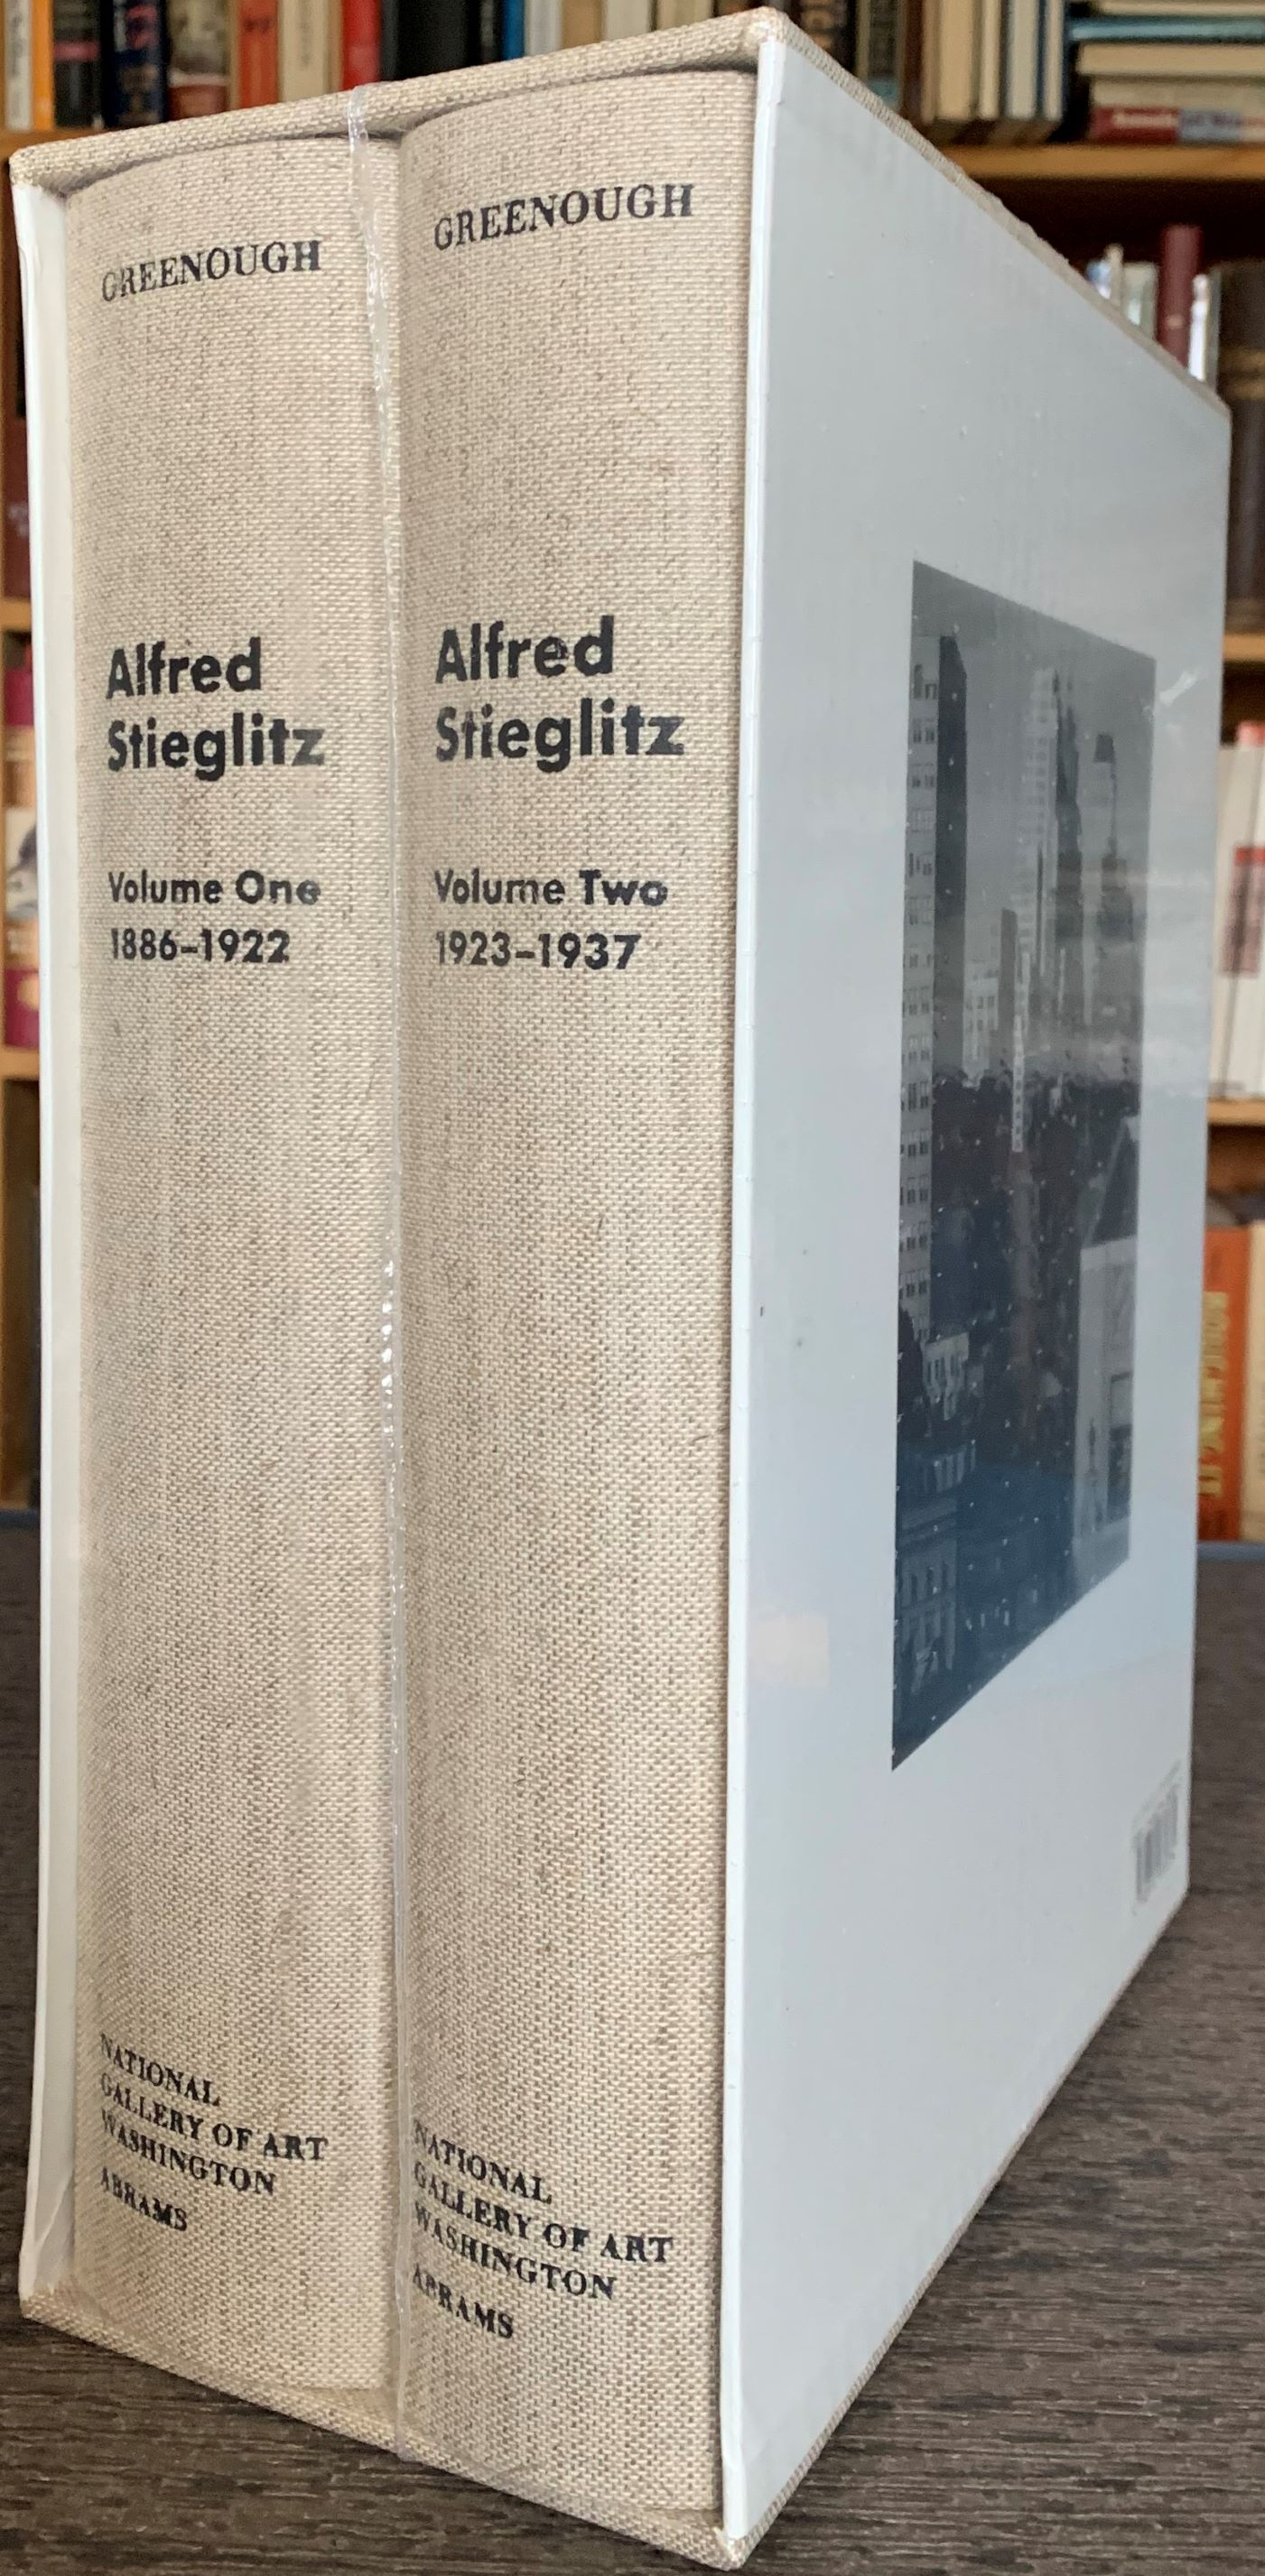 Image for Alfred Stieglitz: The Key Set; The Alfred Stieglitz Collection of Photographs (2 vols.).  [Still in original shrinkwrap and shipping box with handle]